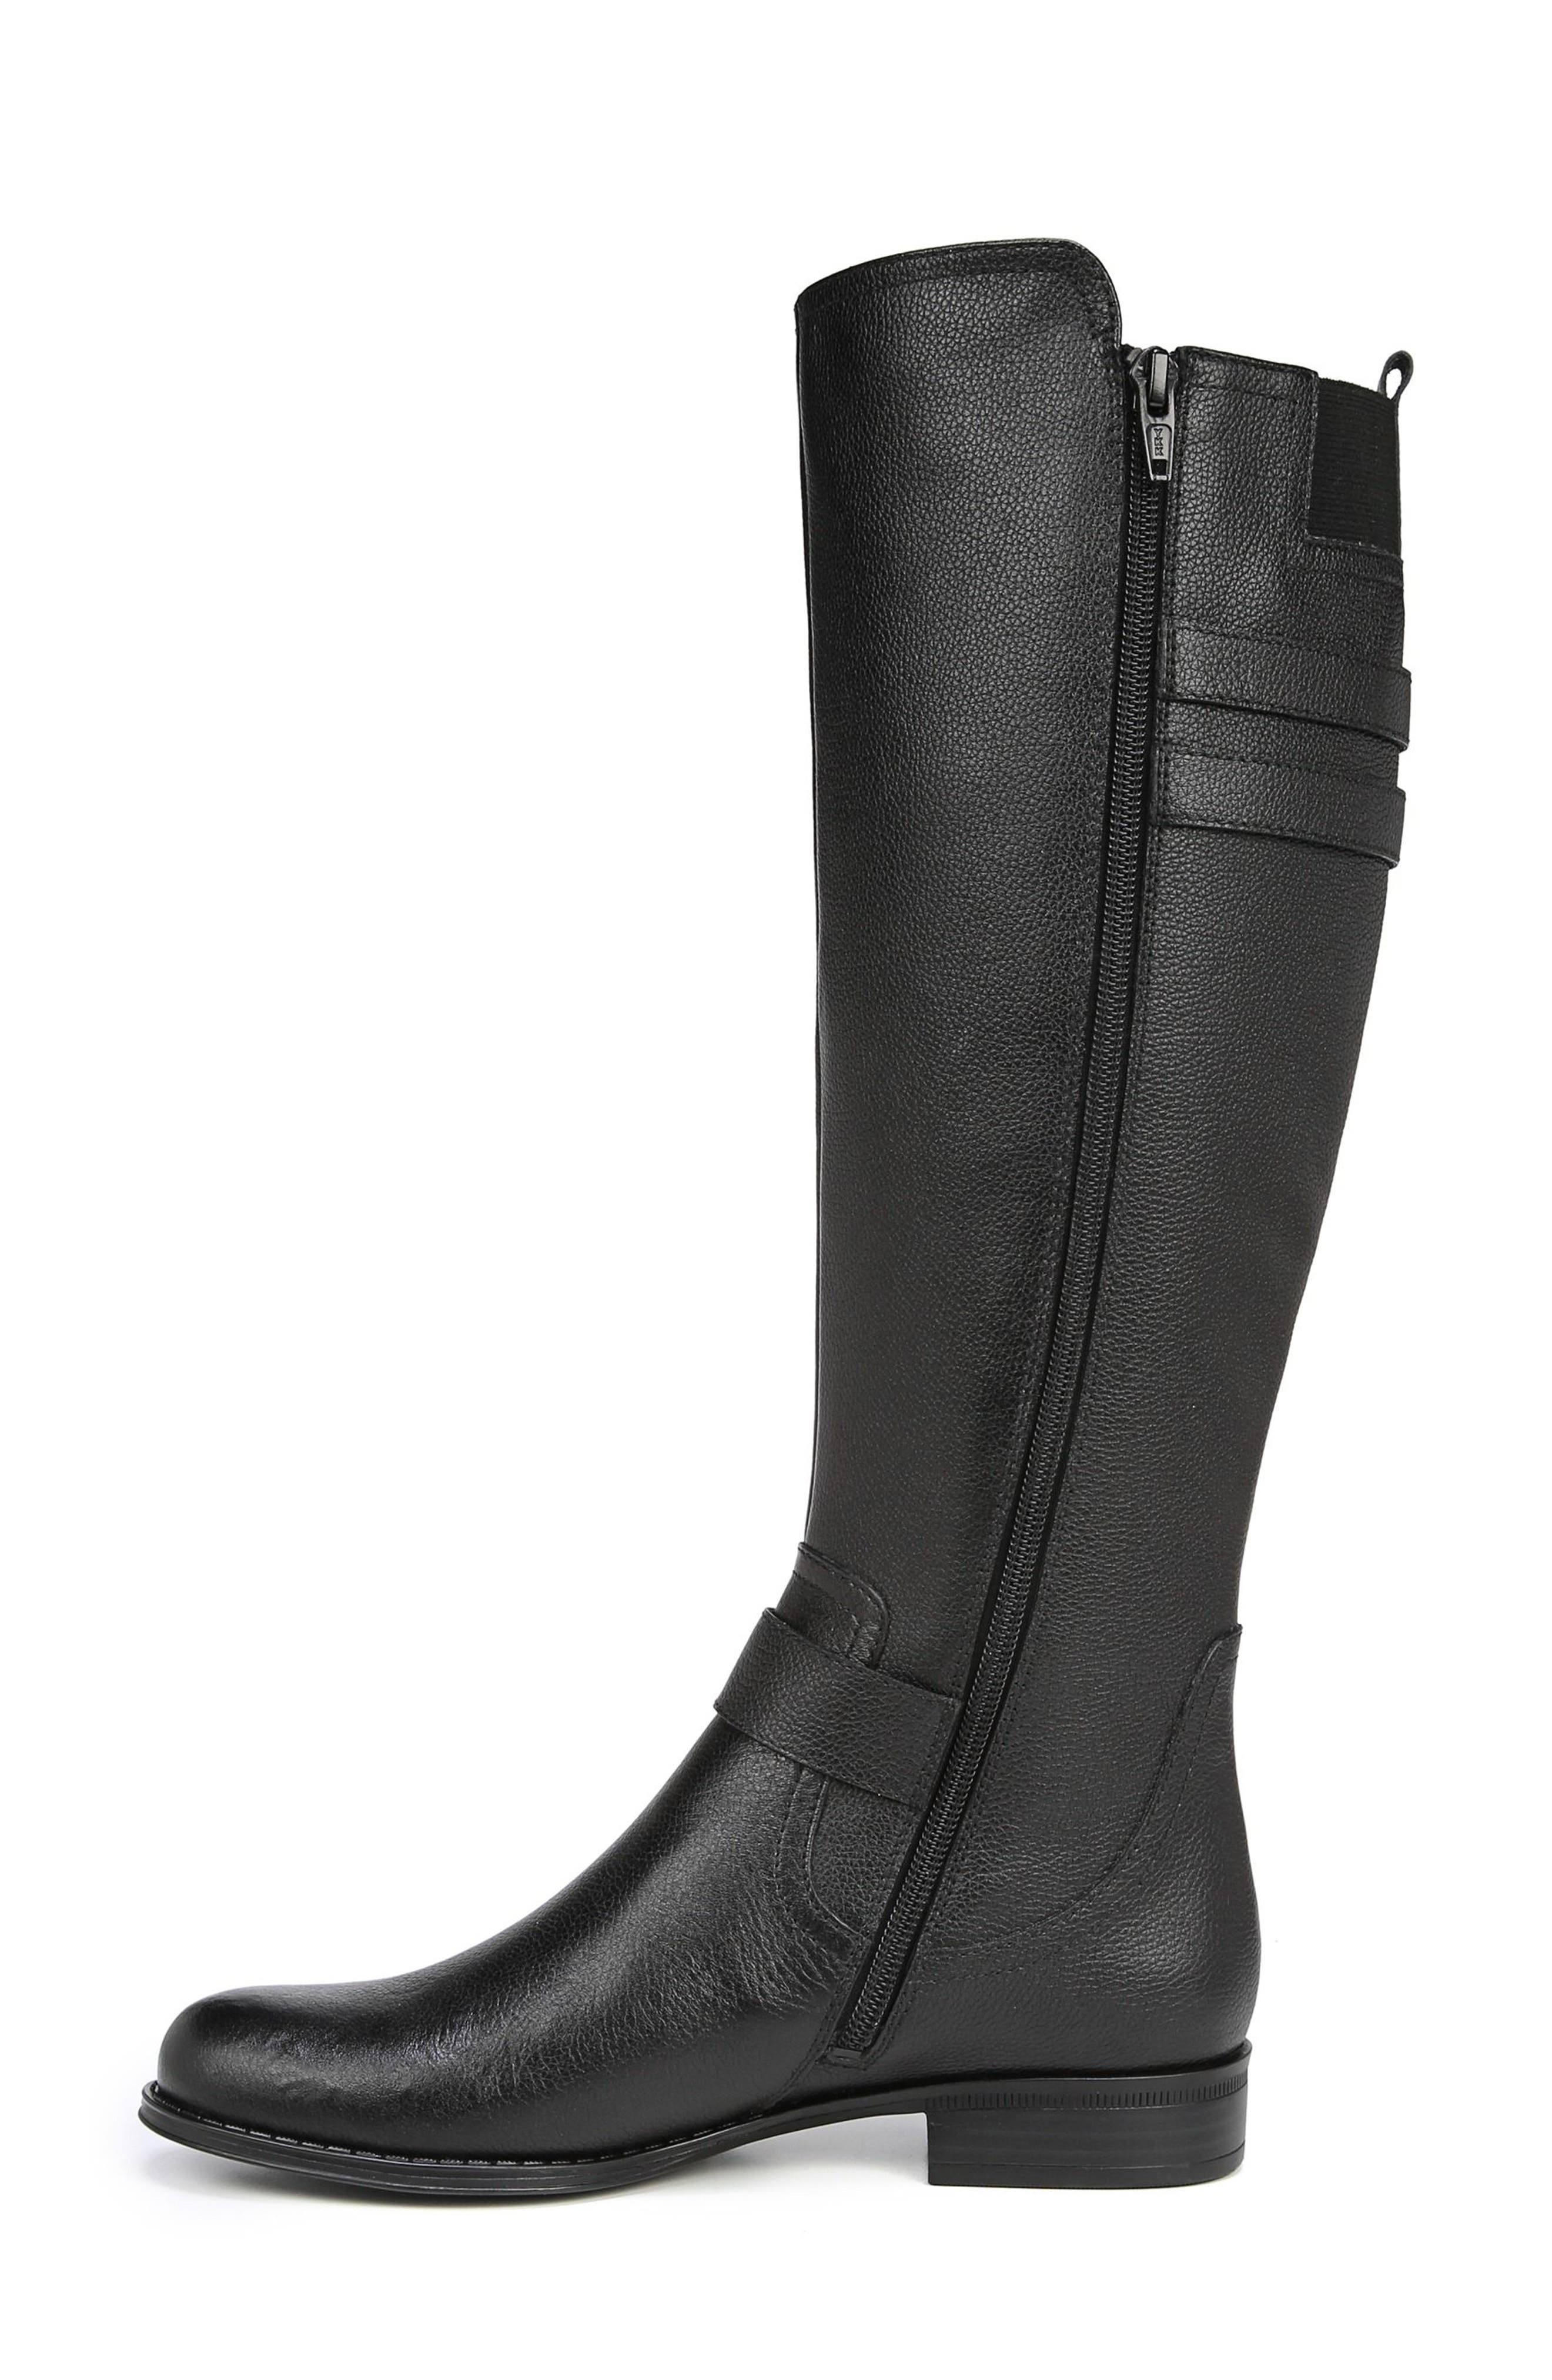 Jessie Knee High Riding Boot,                             Alternate thumbnail 8, color,                             BLACK LEATHER